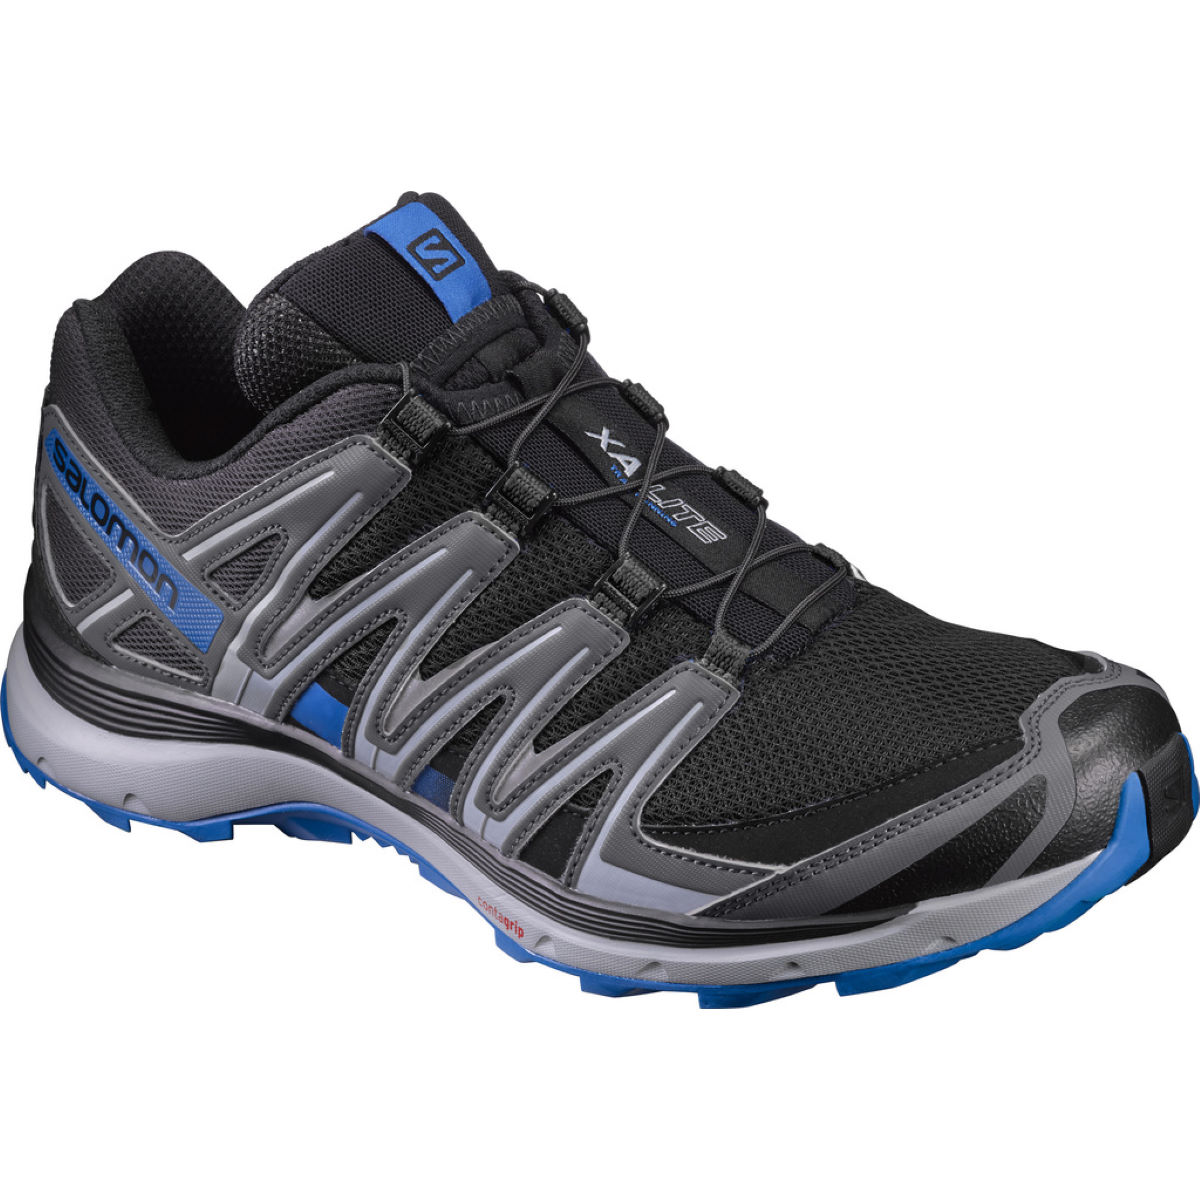 Salomon xa lite shoes offroad running shoes black quiet shade bl aw17 l393307007